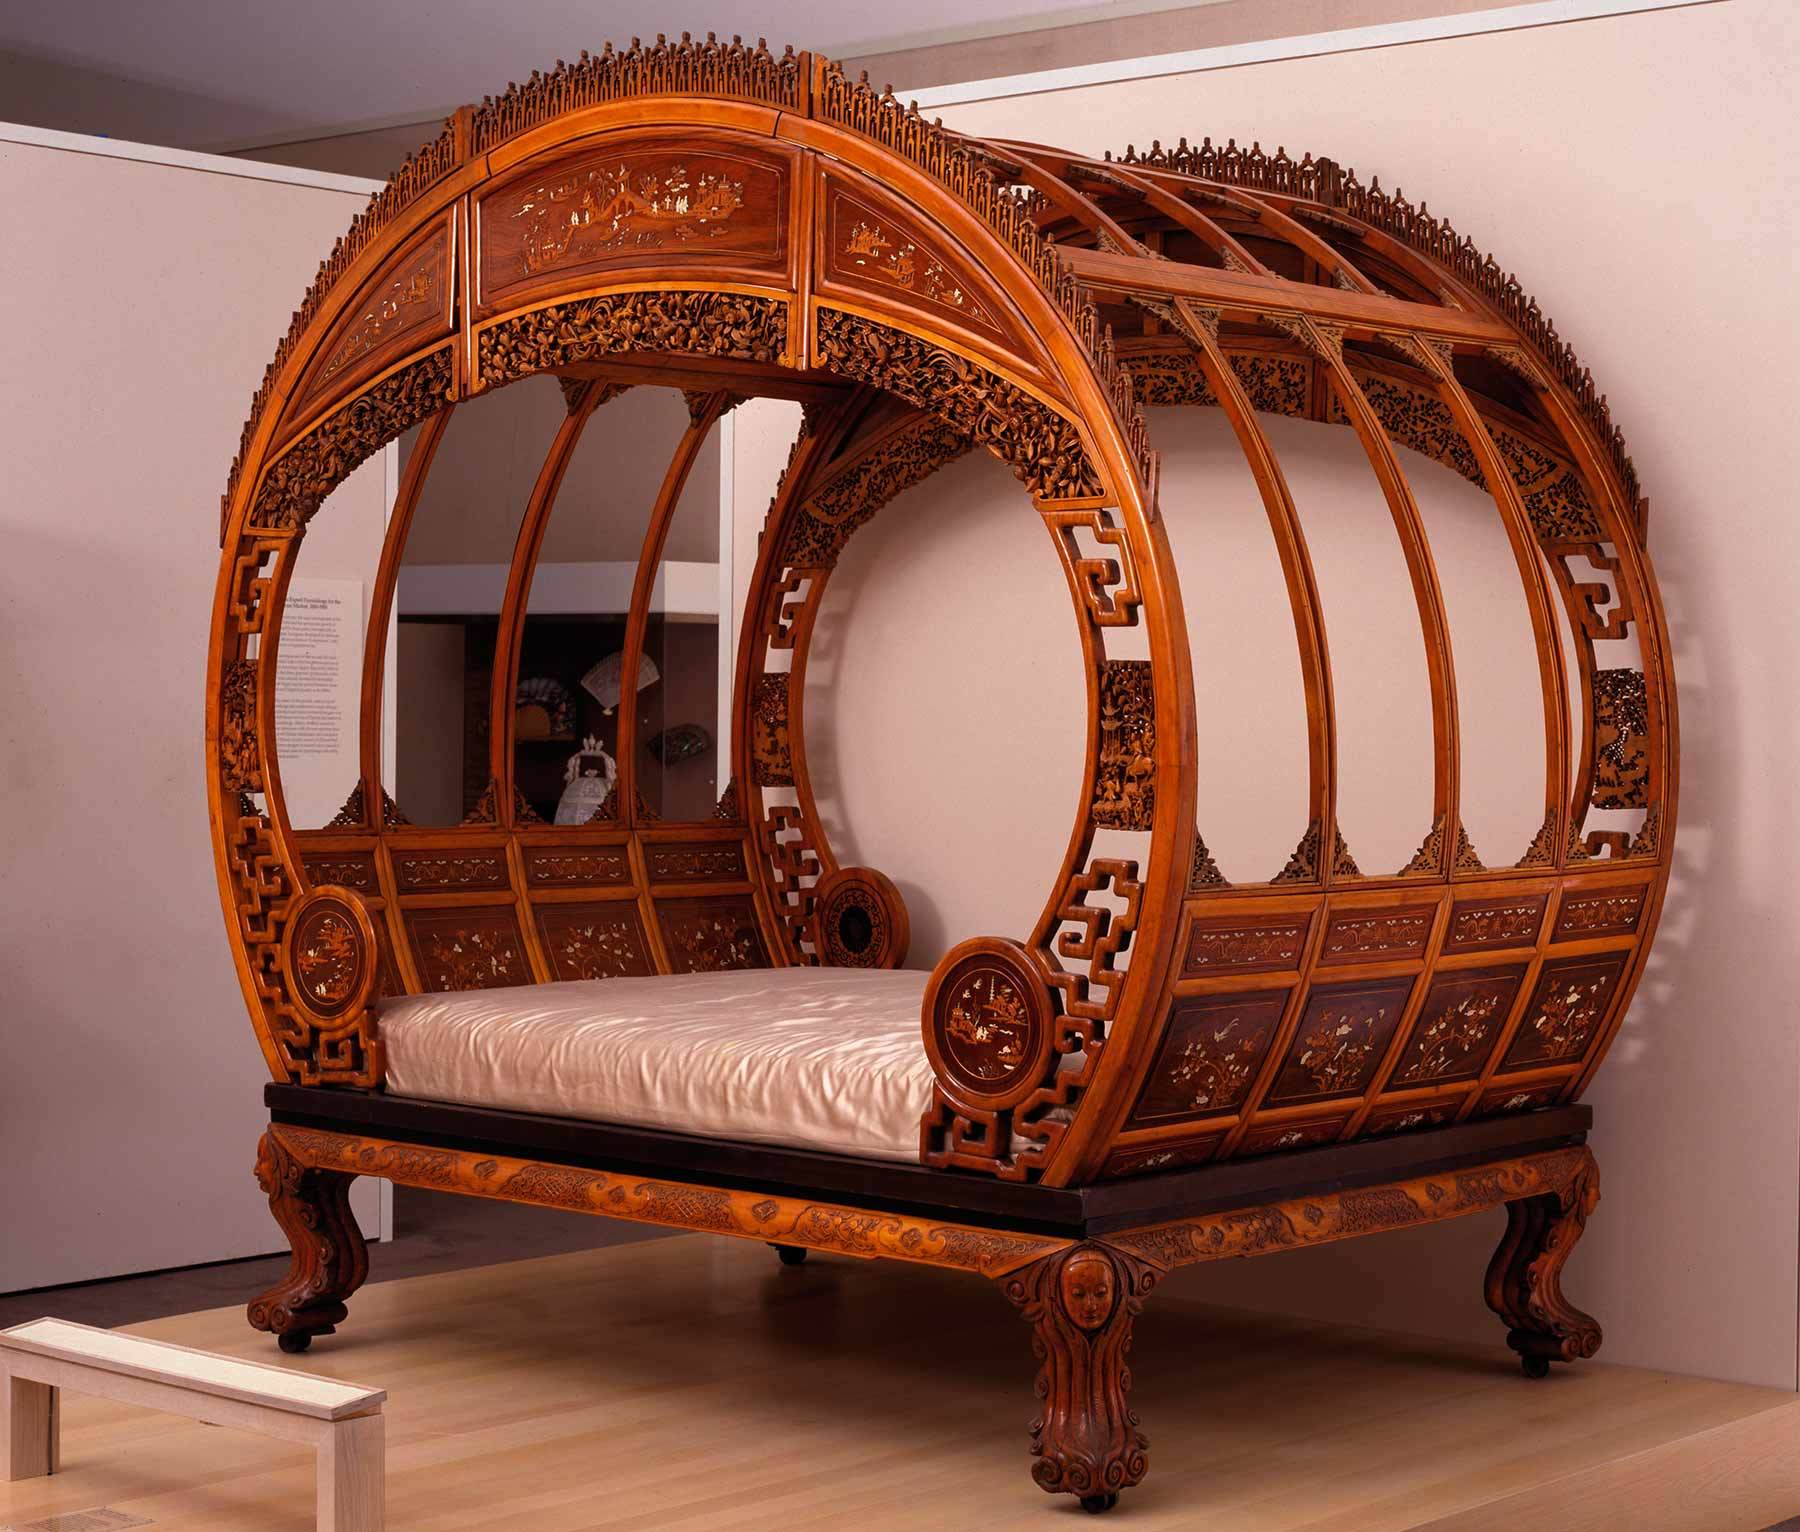 Artists in Ningbo, China, Moon-gate bed, about 1876